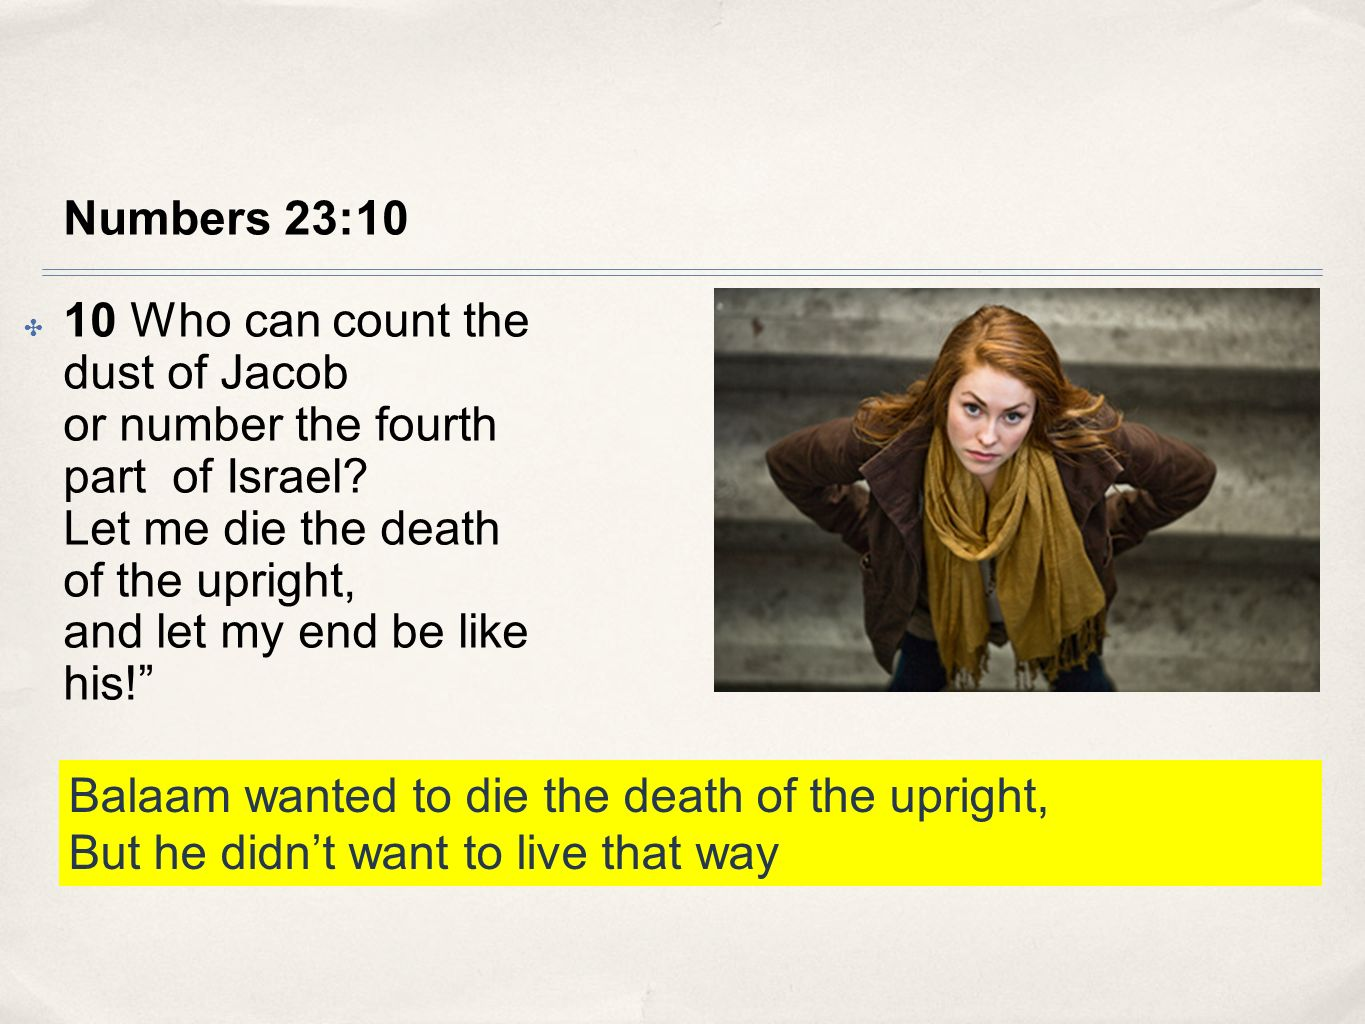 Balaam wanted to die the death of the upright,